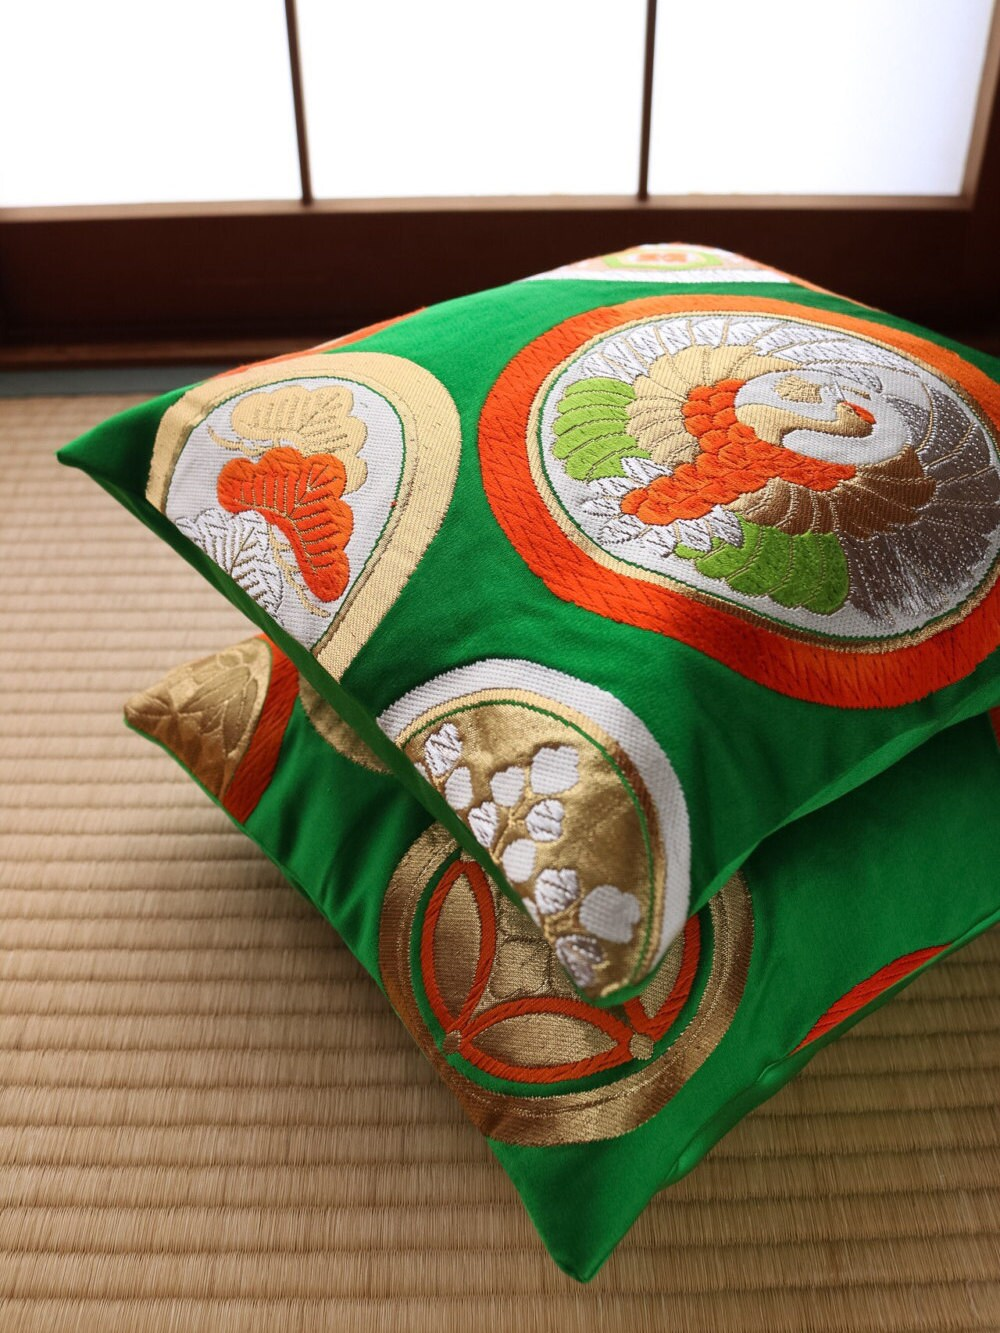 Oriental Throw Pillow Covers : Small Japanese Cushion Covers Japanese Pillows Throw Pillows Oriental Pillows Japanese ...